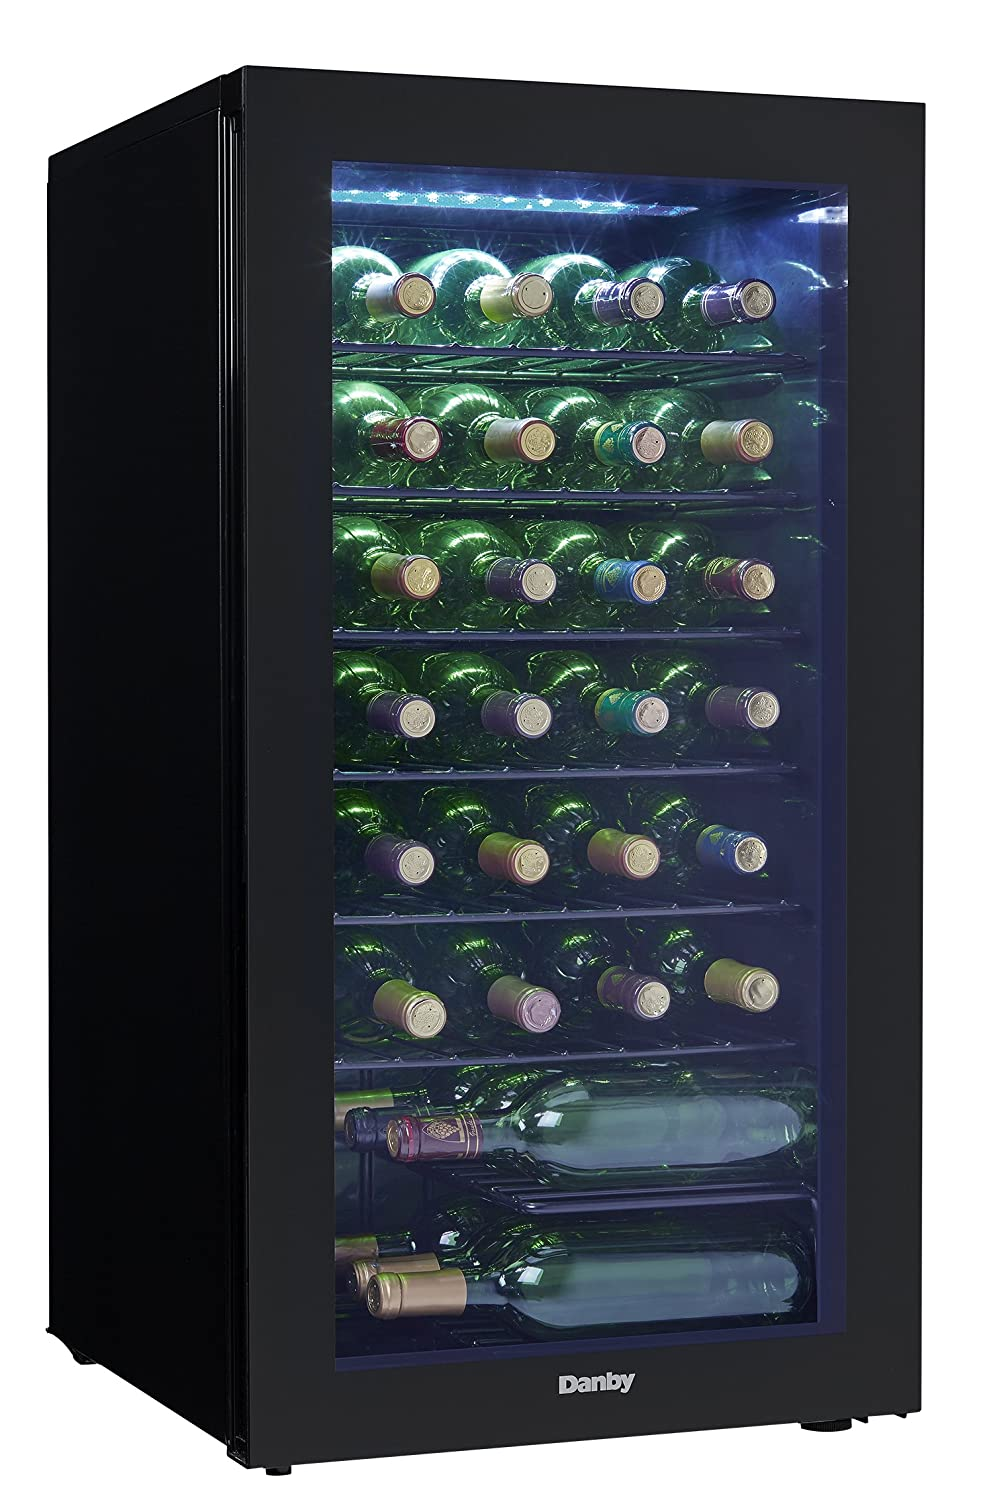 Danby DWC032A2BDB 36 Bottle Wine Cooler, Black